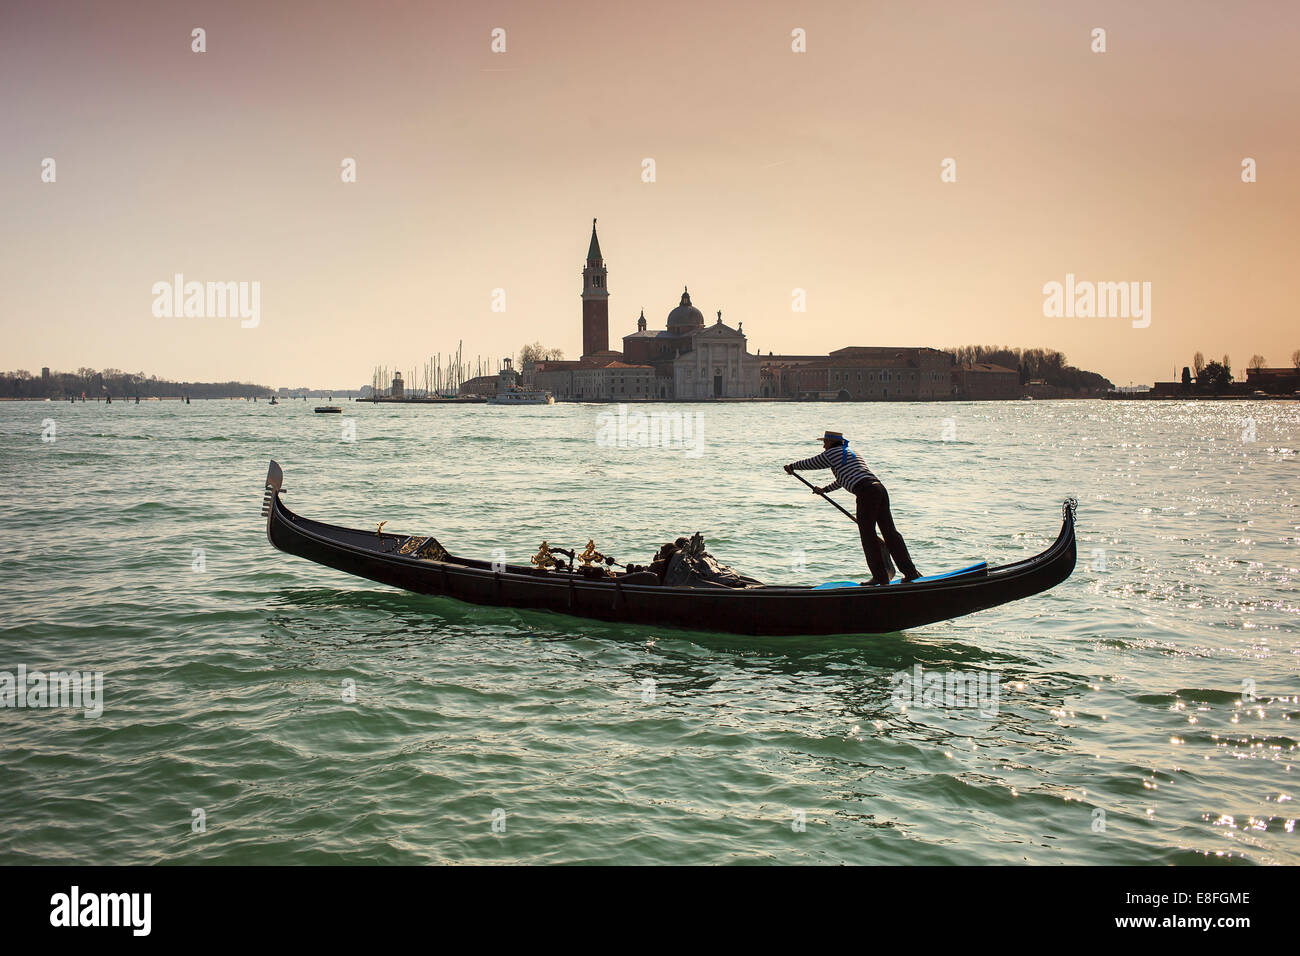 f2d3e29f680 Gondolier Venice Hat Stock Photos   Gondolier Venice Hat Stock ...